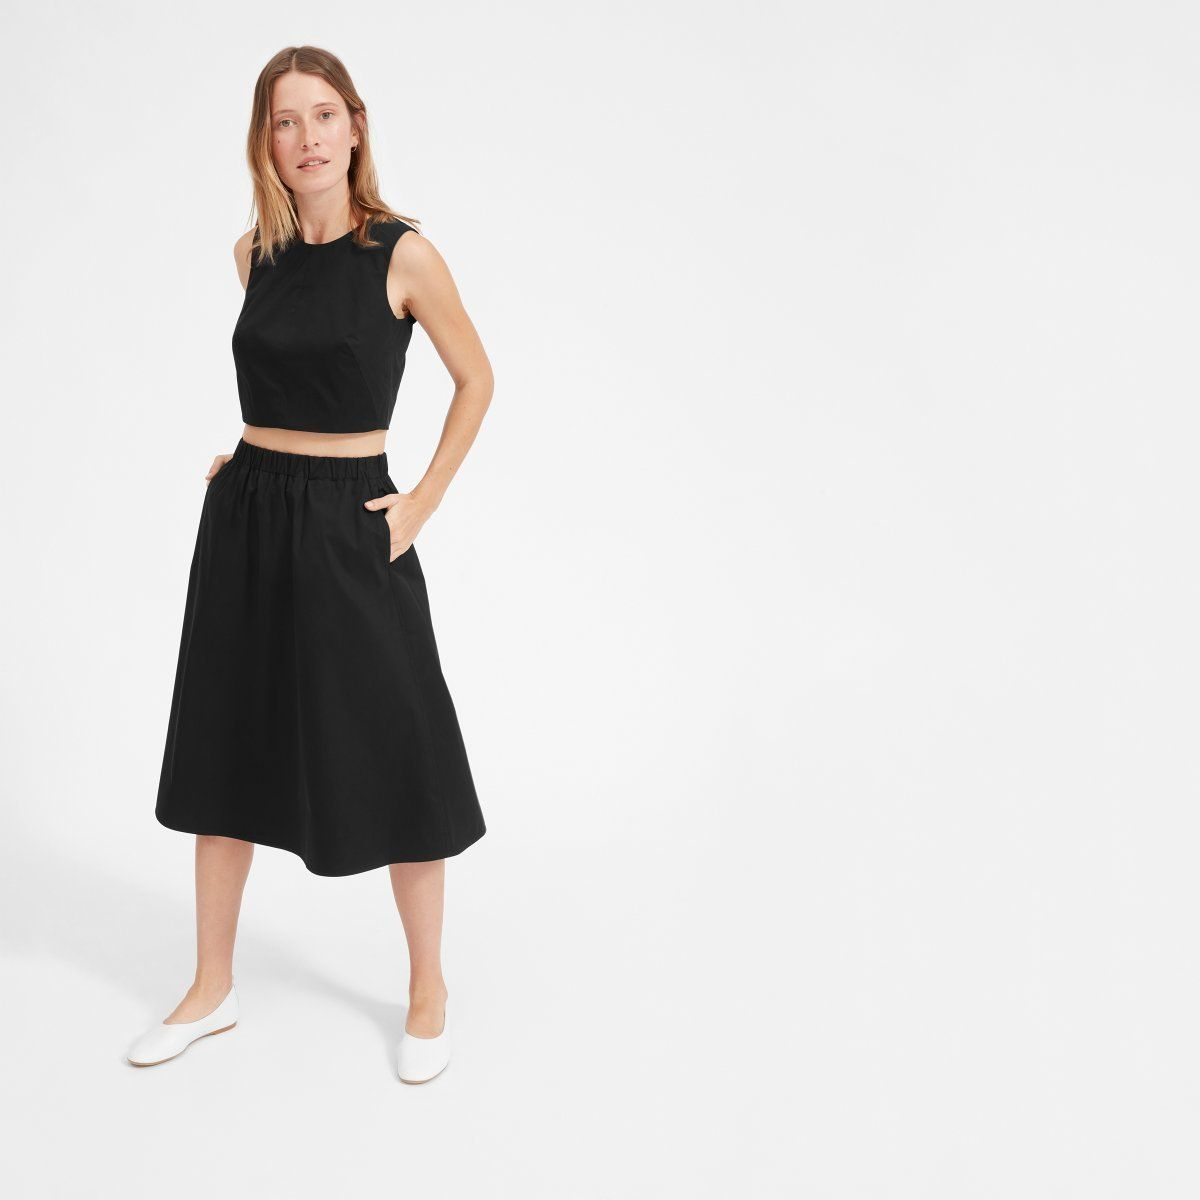 """Get the matchingset<a href=""""https://www.everlane.com/products/womens-clean-ctn-a-line-skirt-black?collection=wome"""